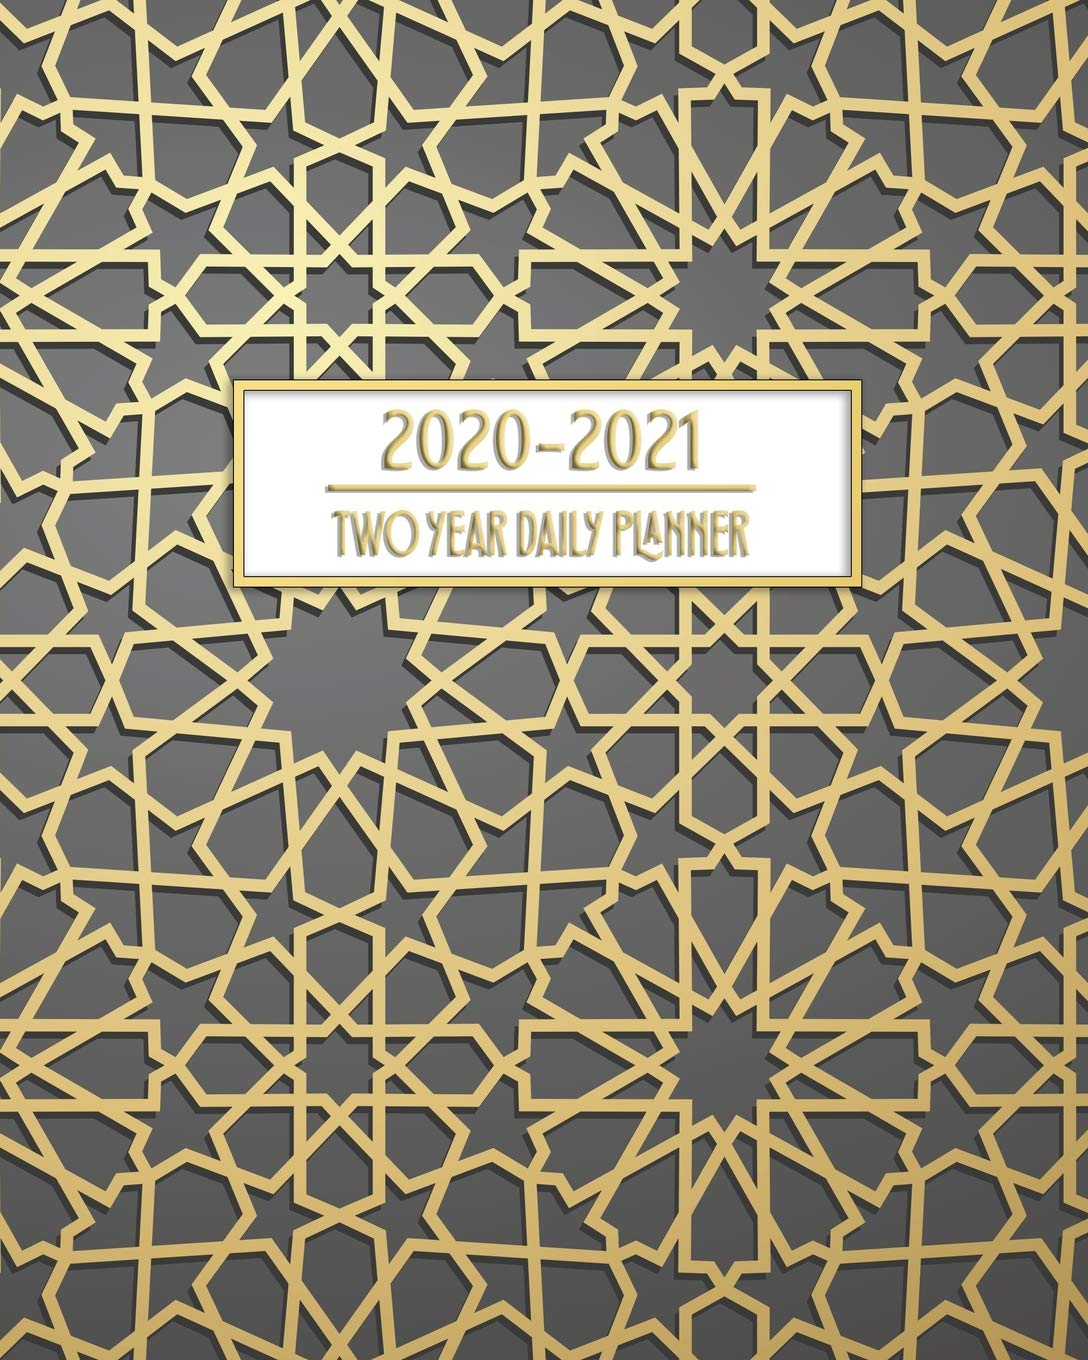 2020 - 2021 Two Year Daily Planner: Gold Islamic Art Pattern ...